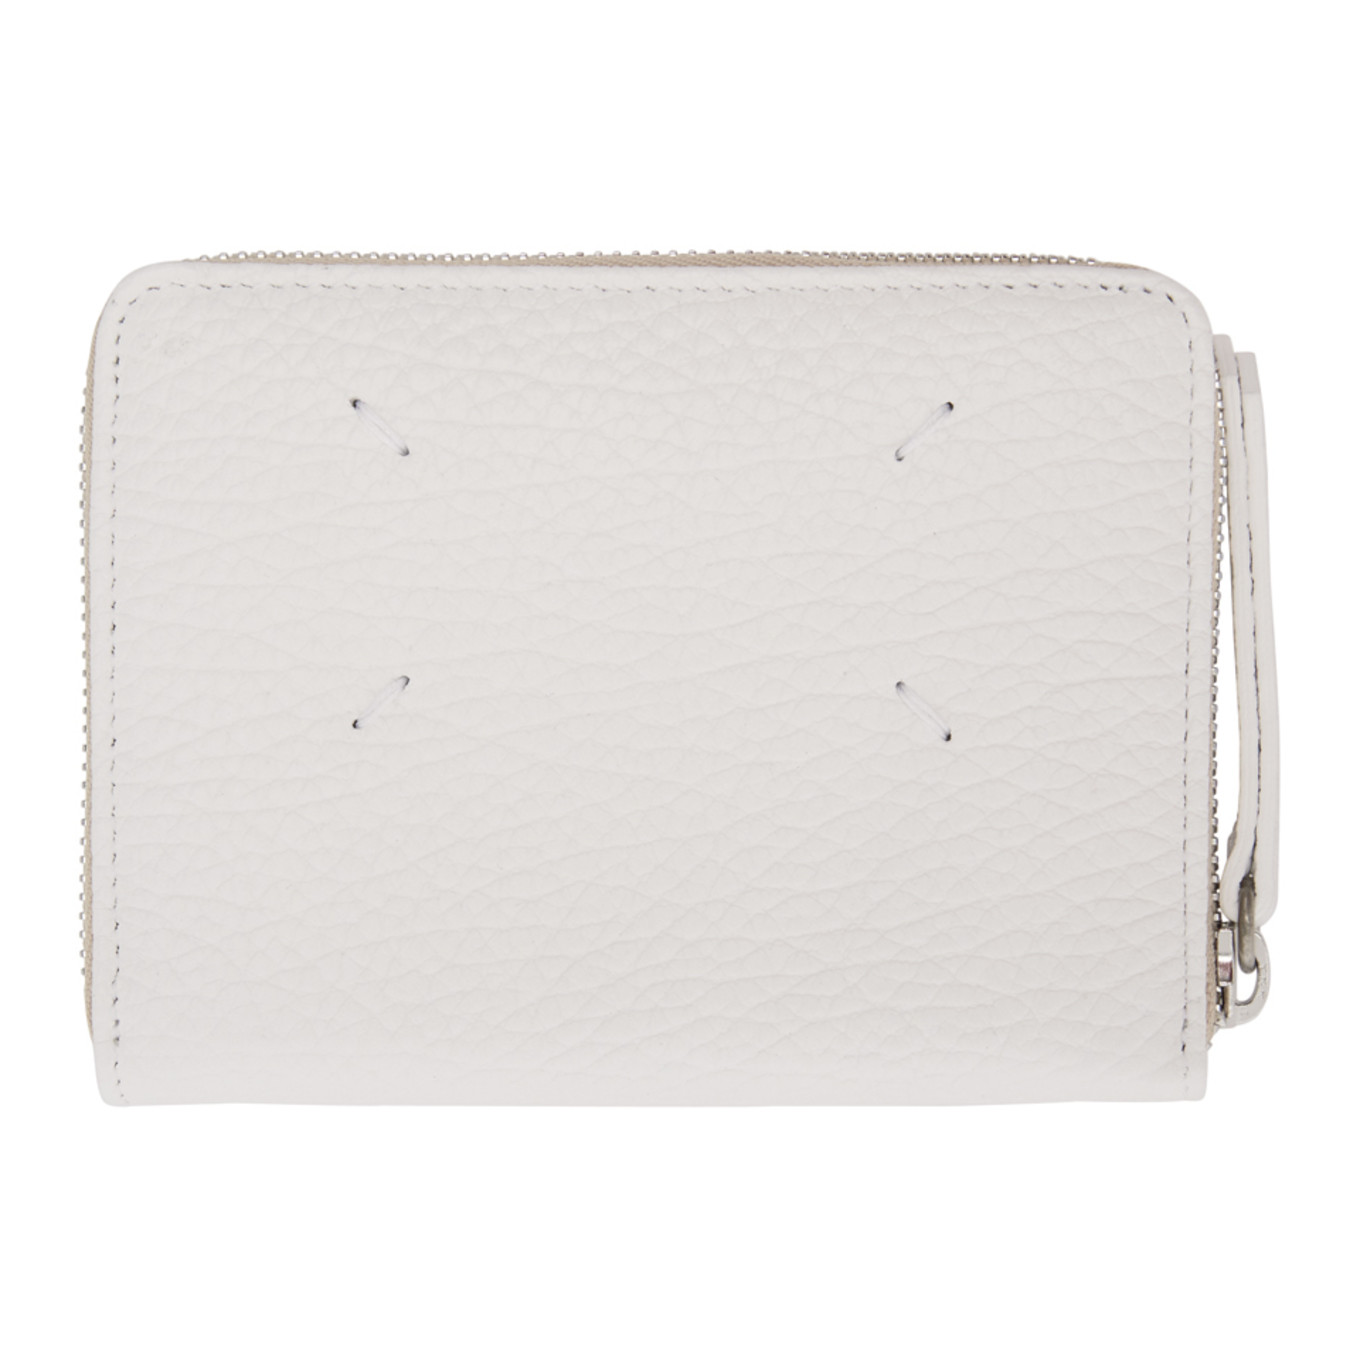 White Leather Zip Wallet by Maison Margiela